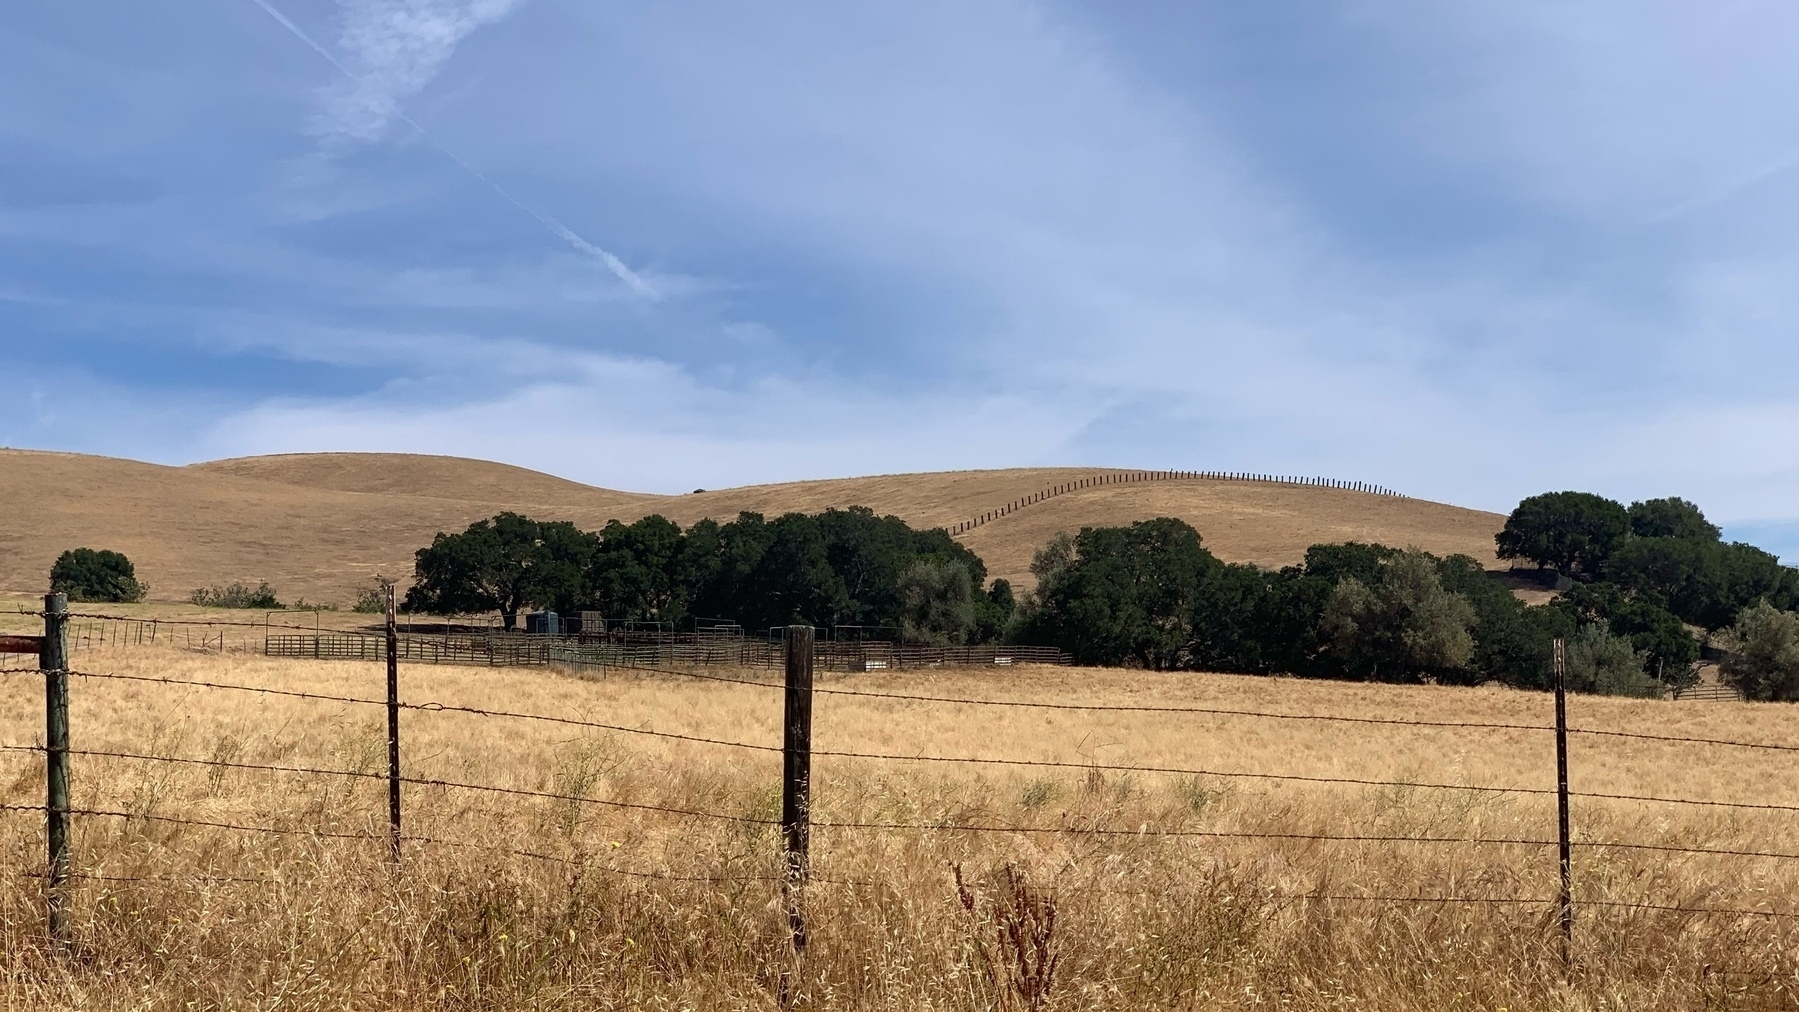 Golden hillside of yellow grass with a few trees and a wispy cloud sky